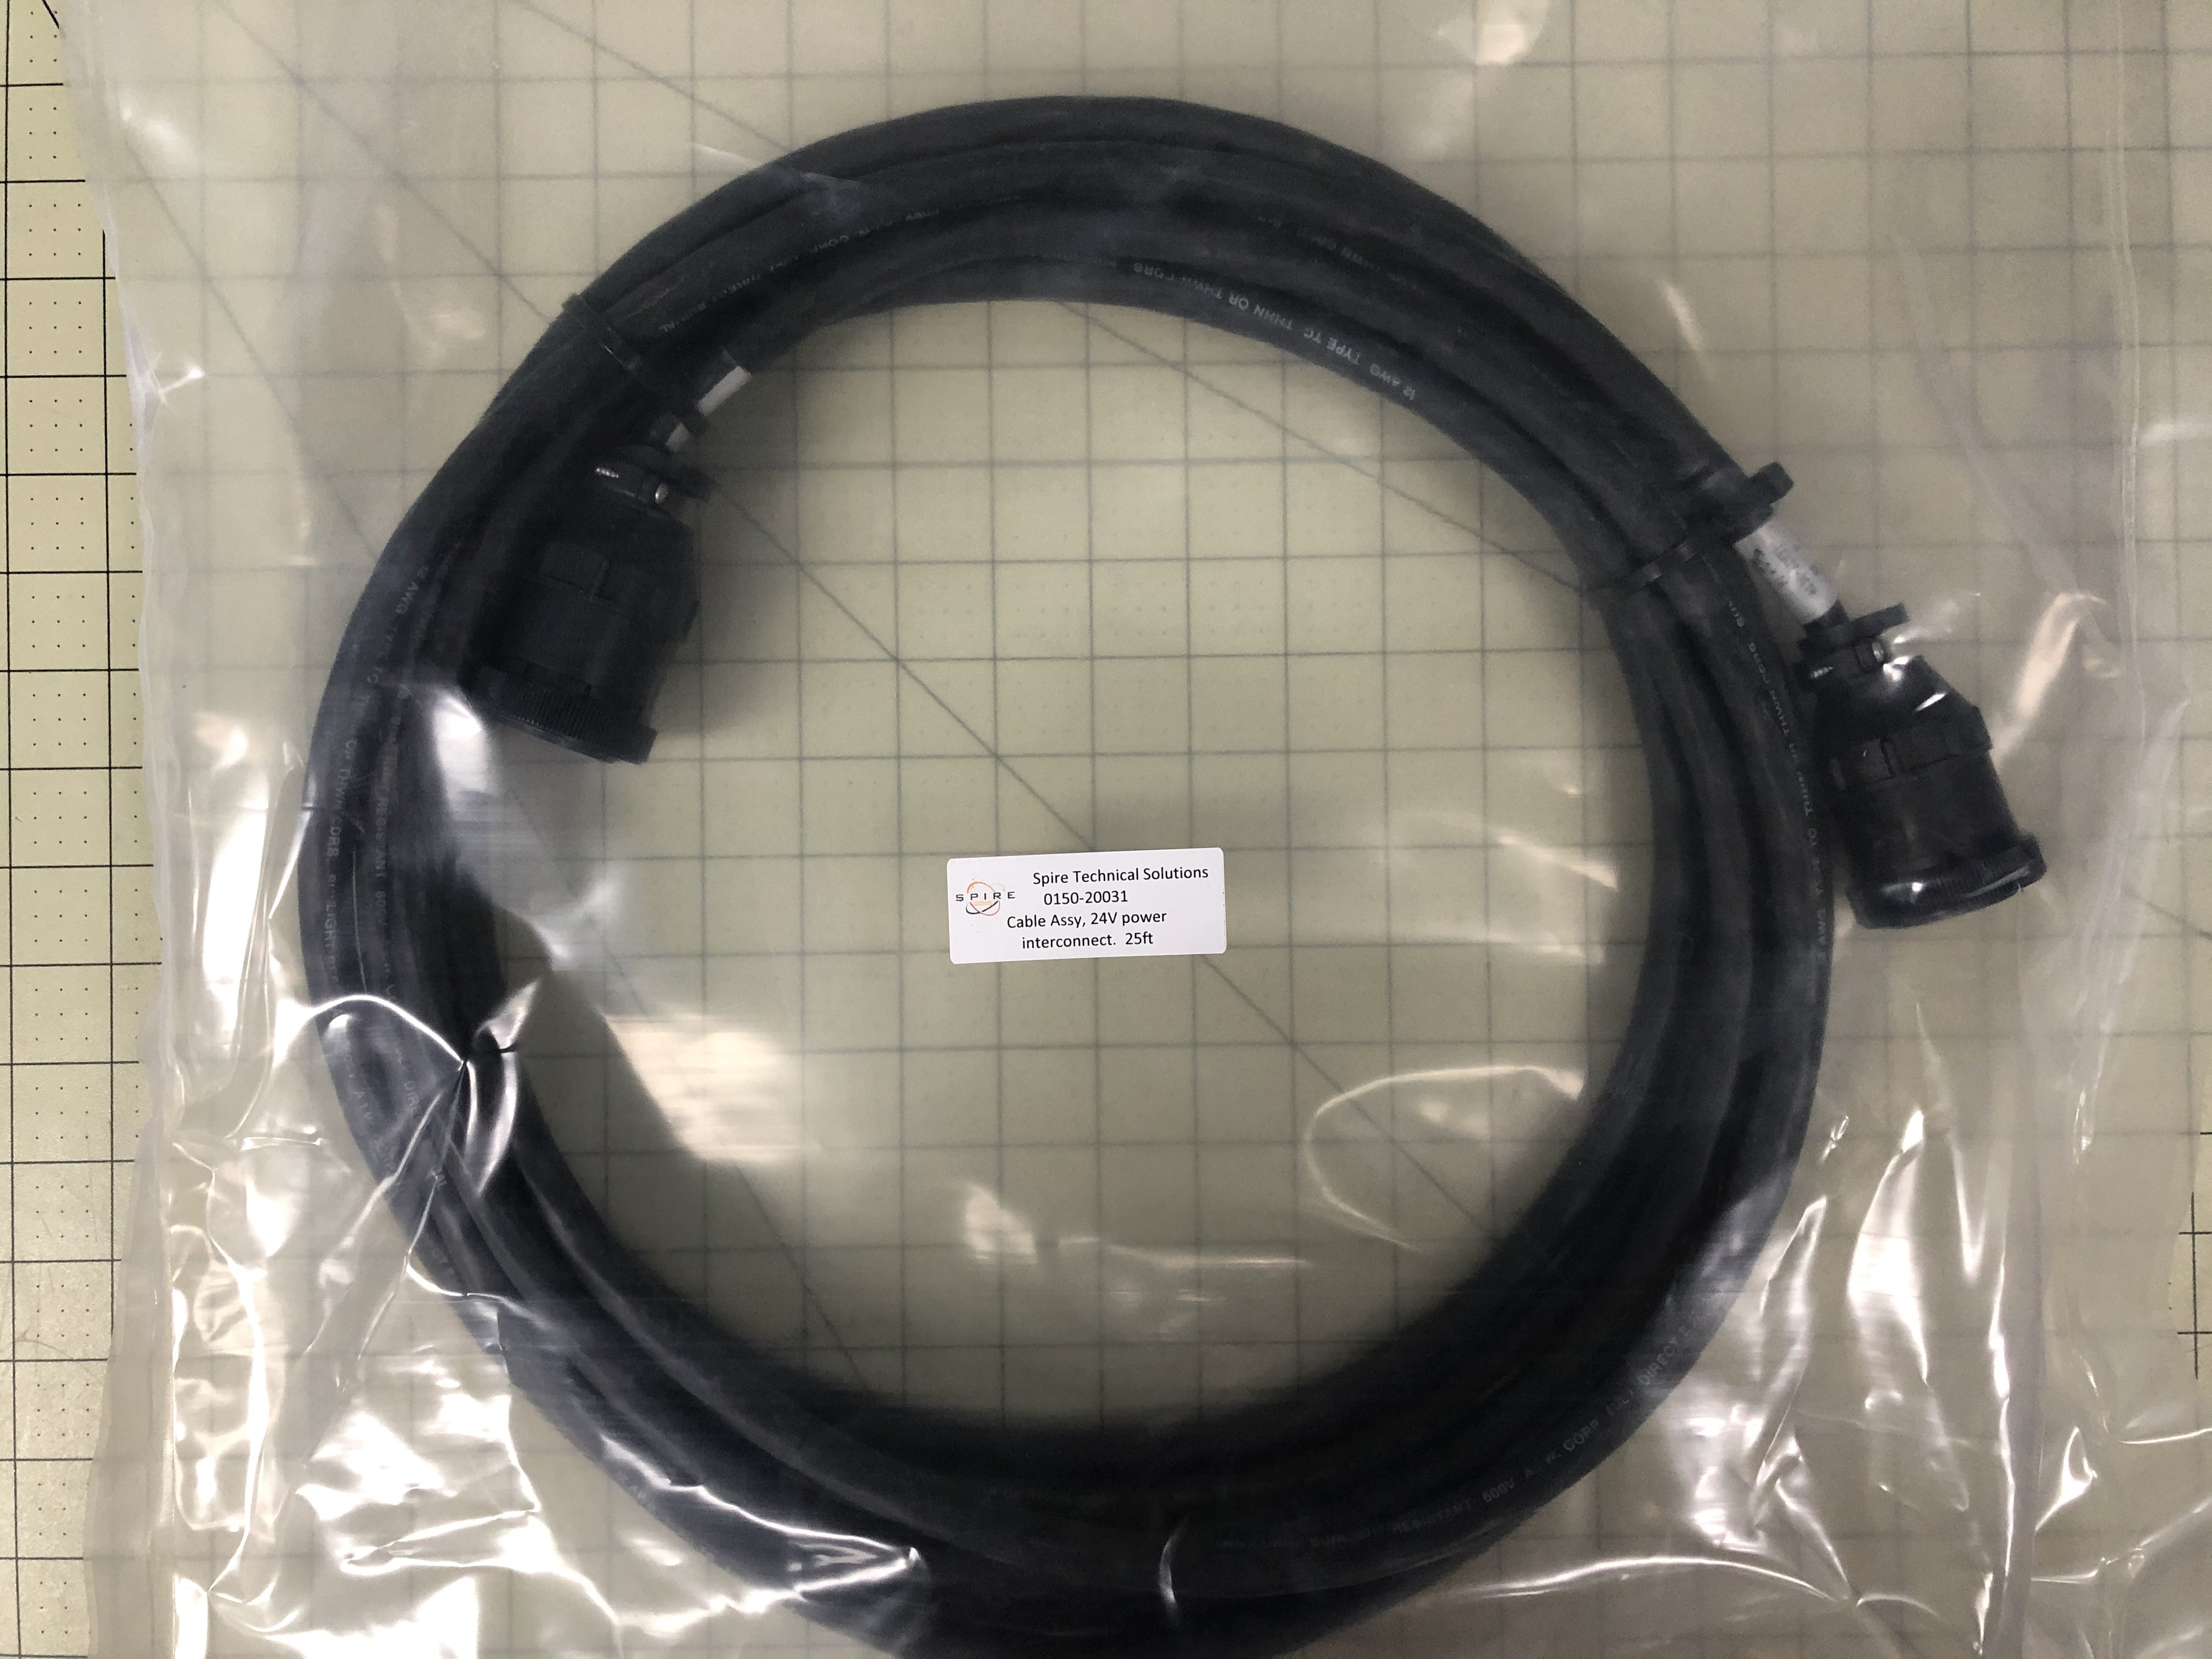 Cable Assy, 24V power interconnect.  25ft